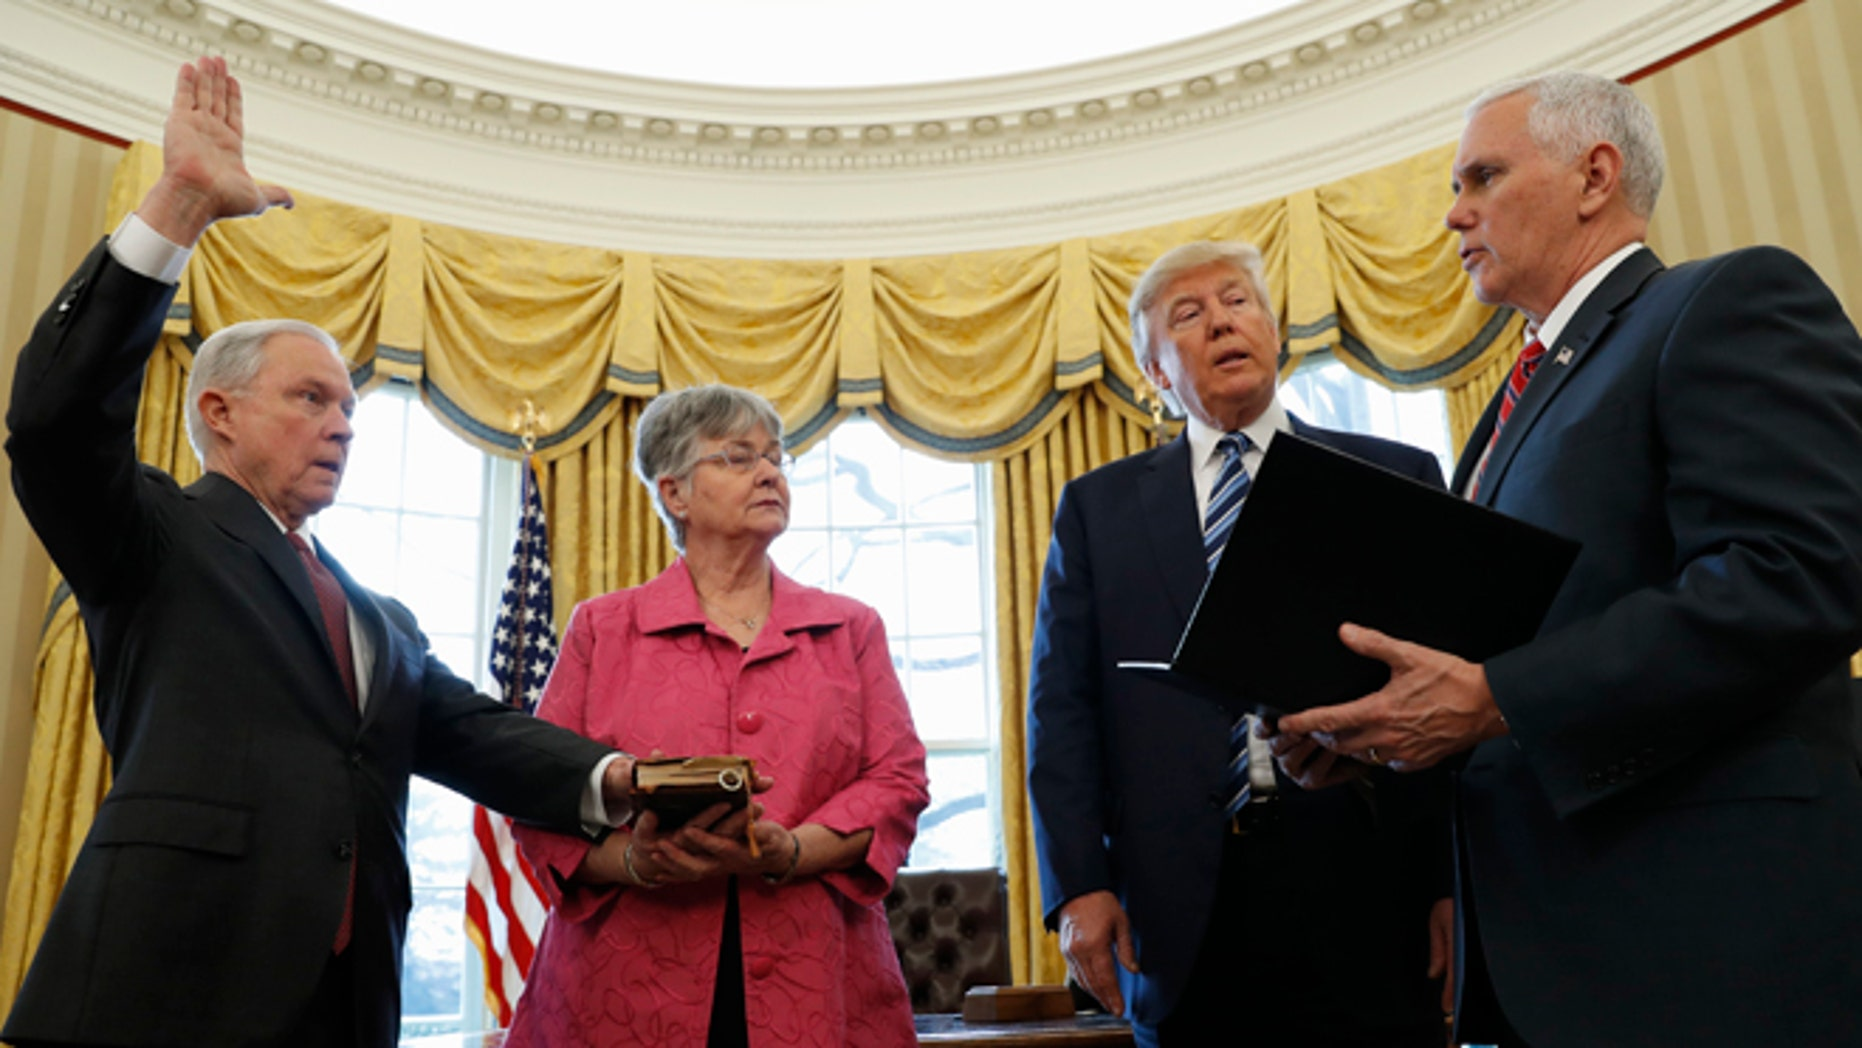 Feb. 9, 2017: President Donald Trump watches as Vice President Mike Pence administers the oath of office to Attorney General Jeff Sessions, accompanied by his wife Mary in the Oval Office of the White House in Washington.